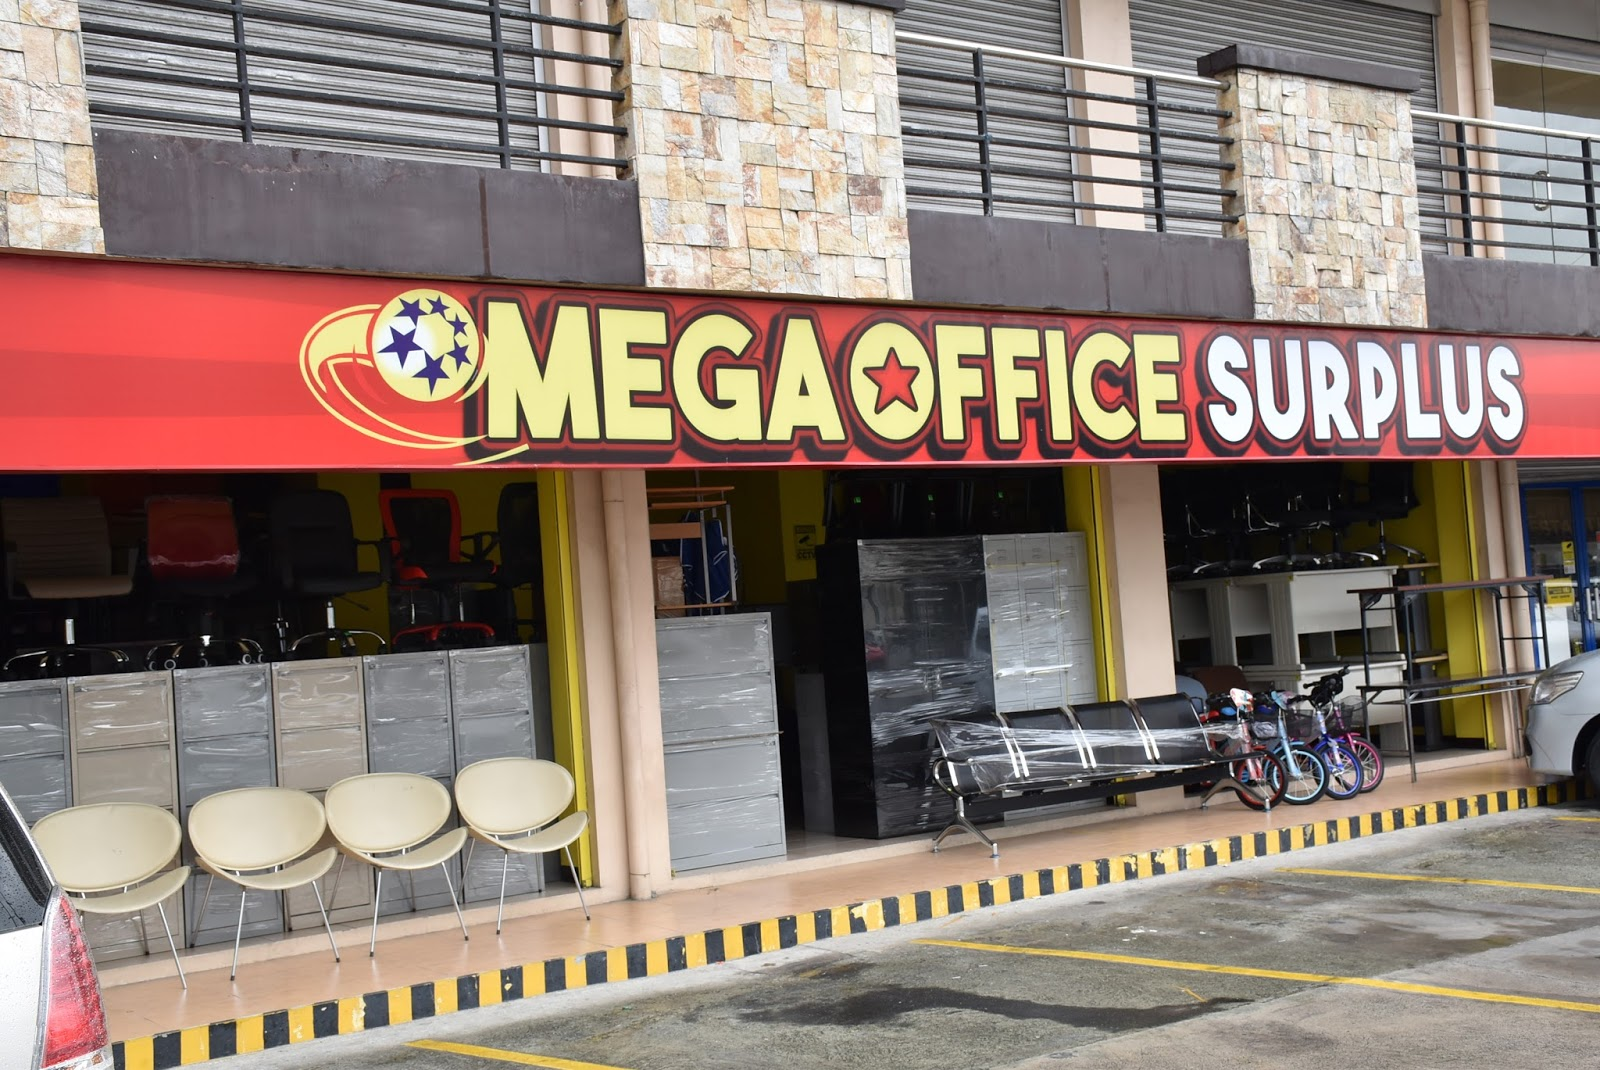 megaoffice surplus laguna | megaoffice surplus philippines